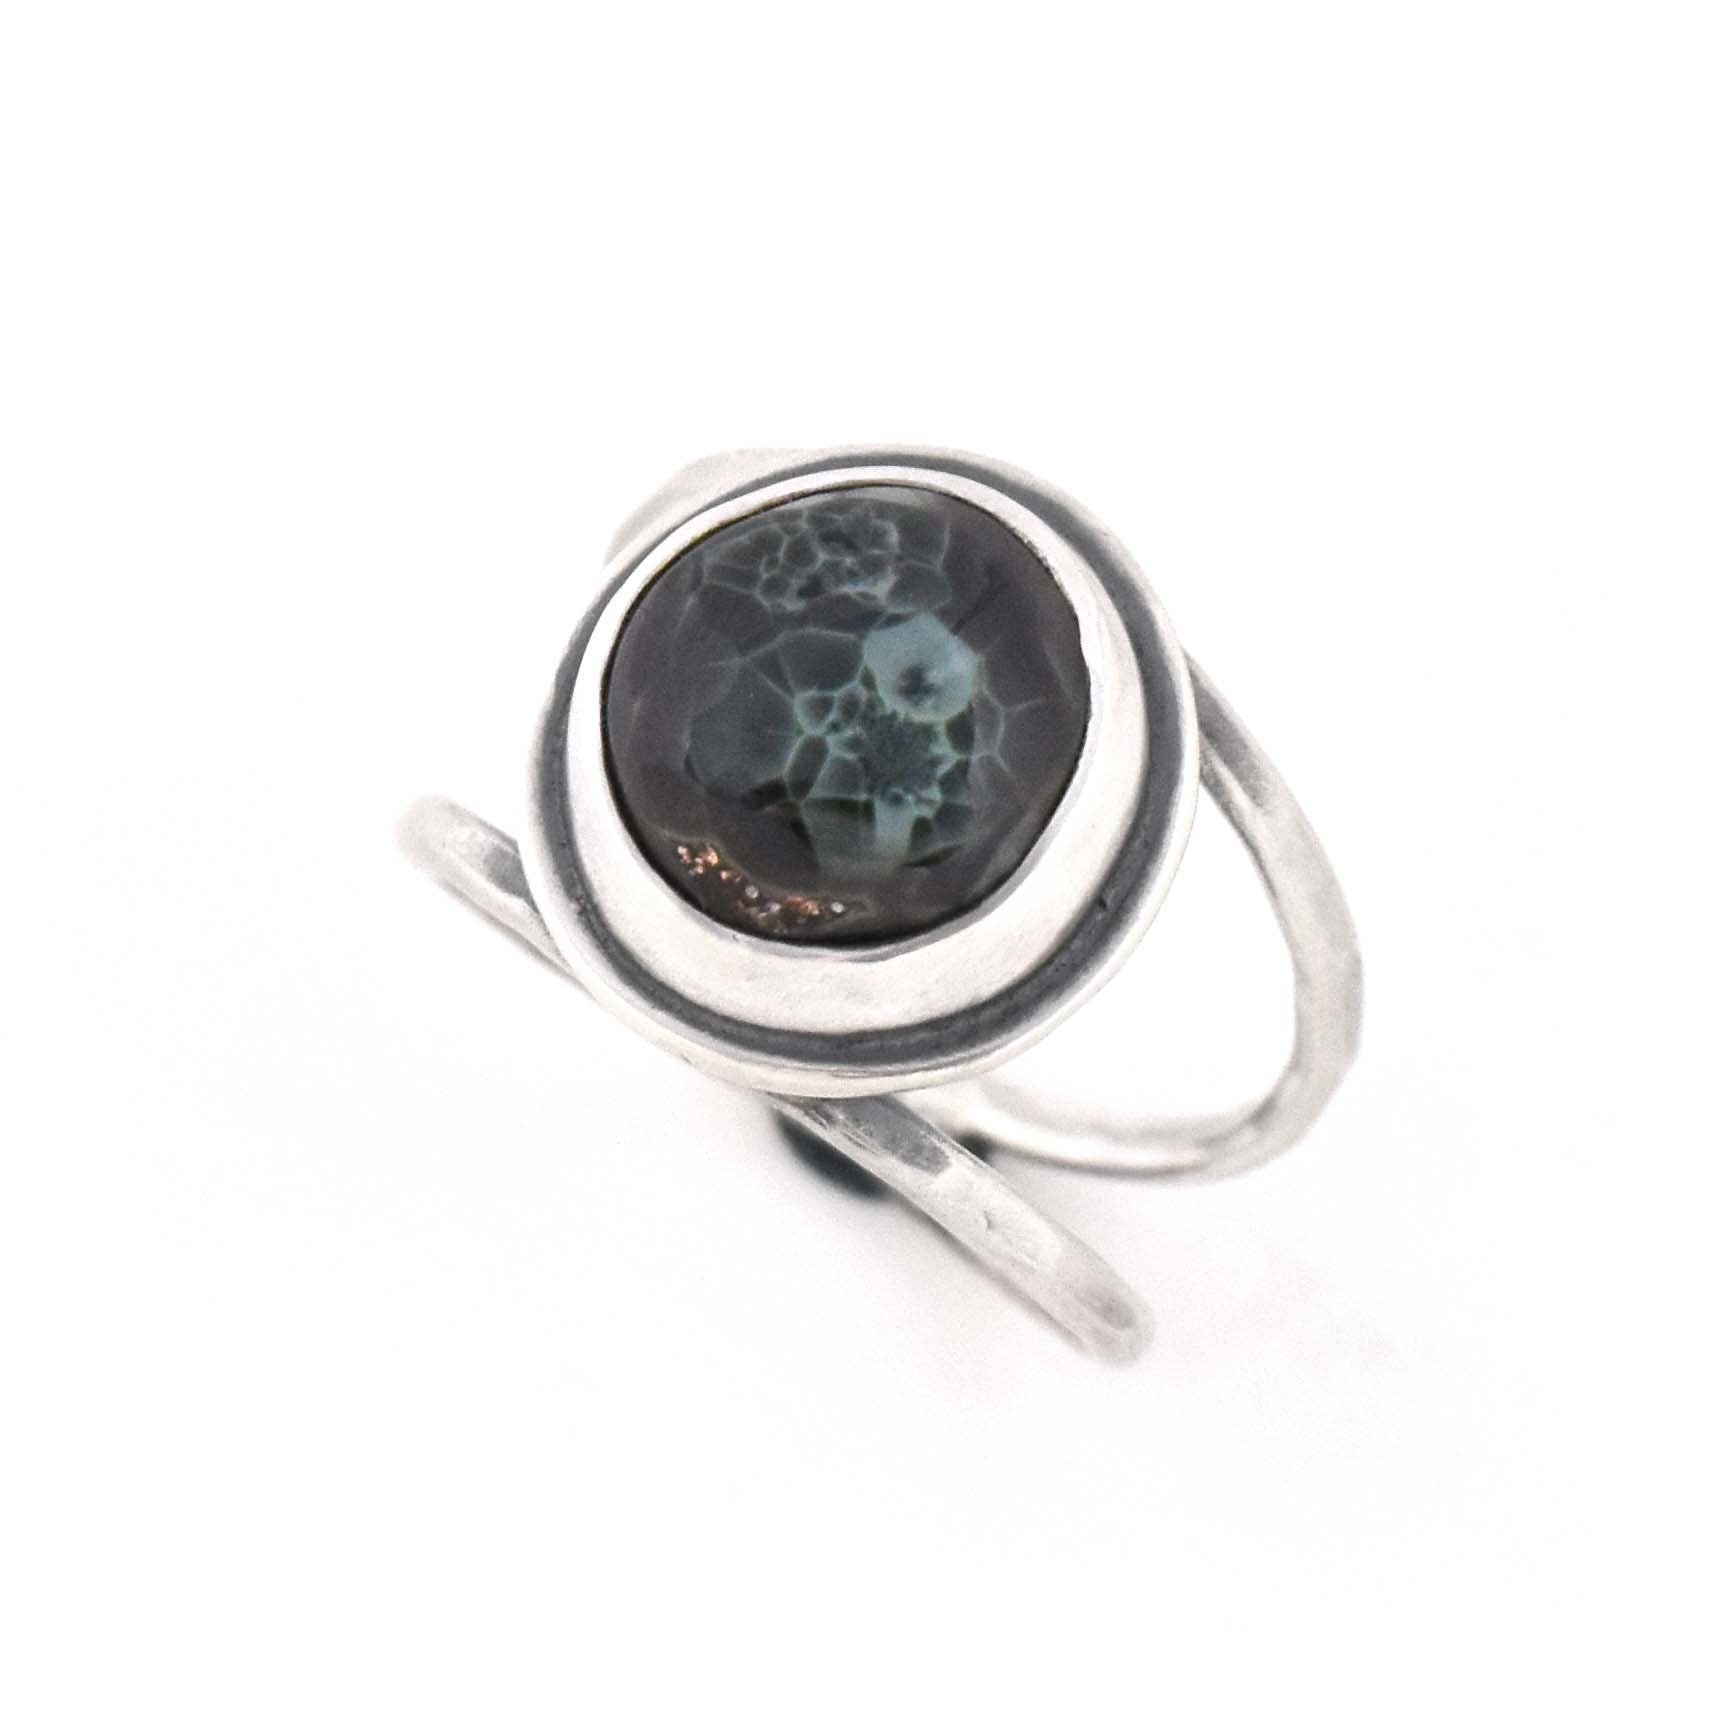 Michigan Greenstone Ring - Size 8, Ring handmade by Beth Millner Jewelry